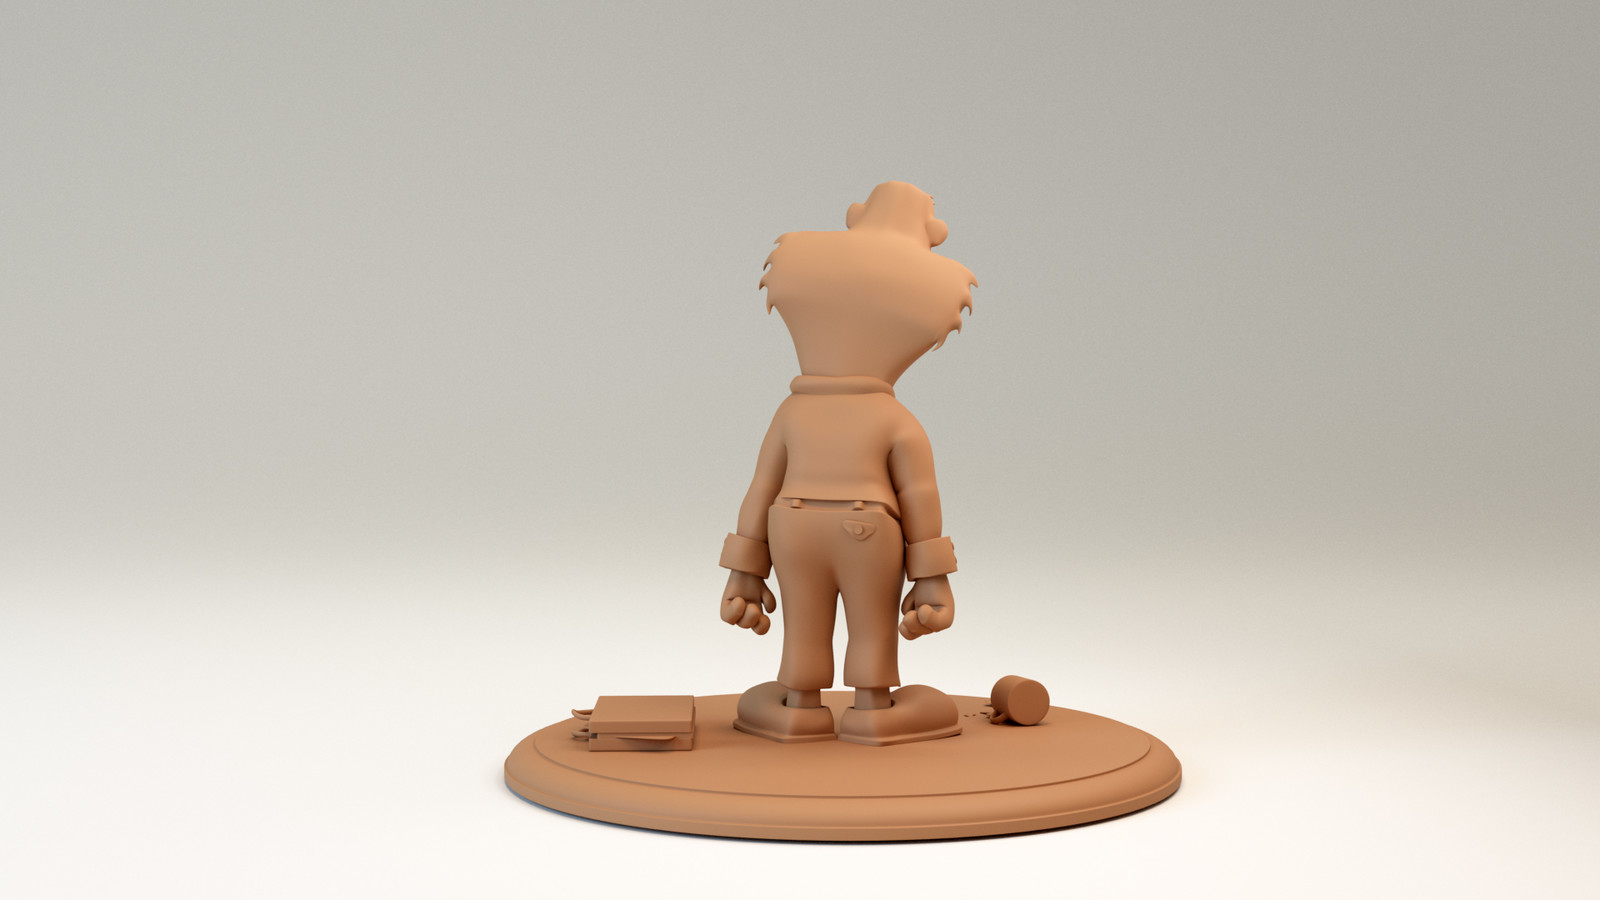 The Working Man, sculpey clay render, back